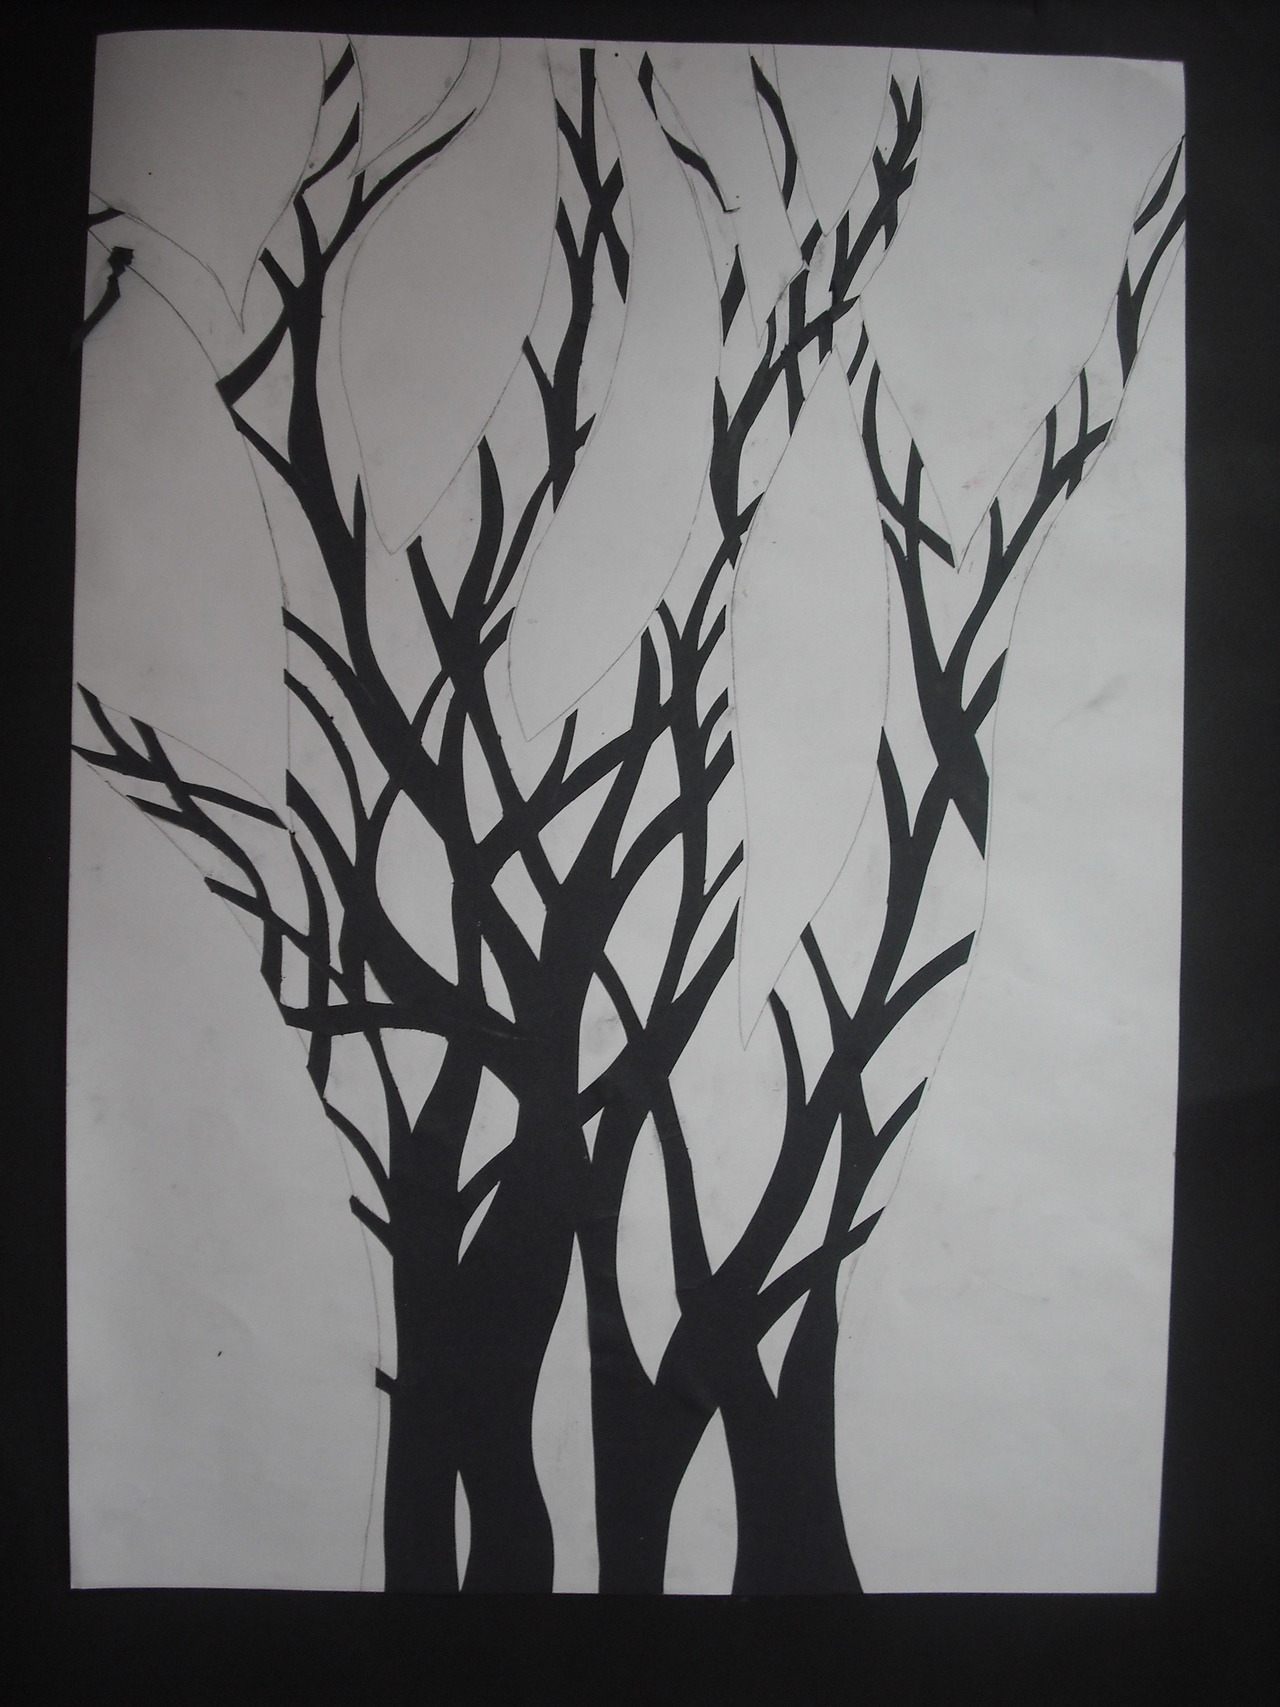 College/2009, Paper cut out, Bethan Meyrick